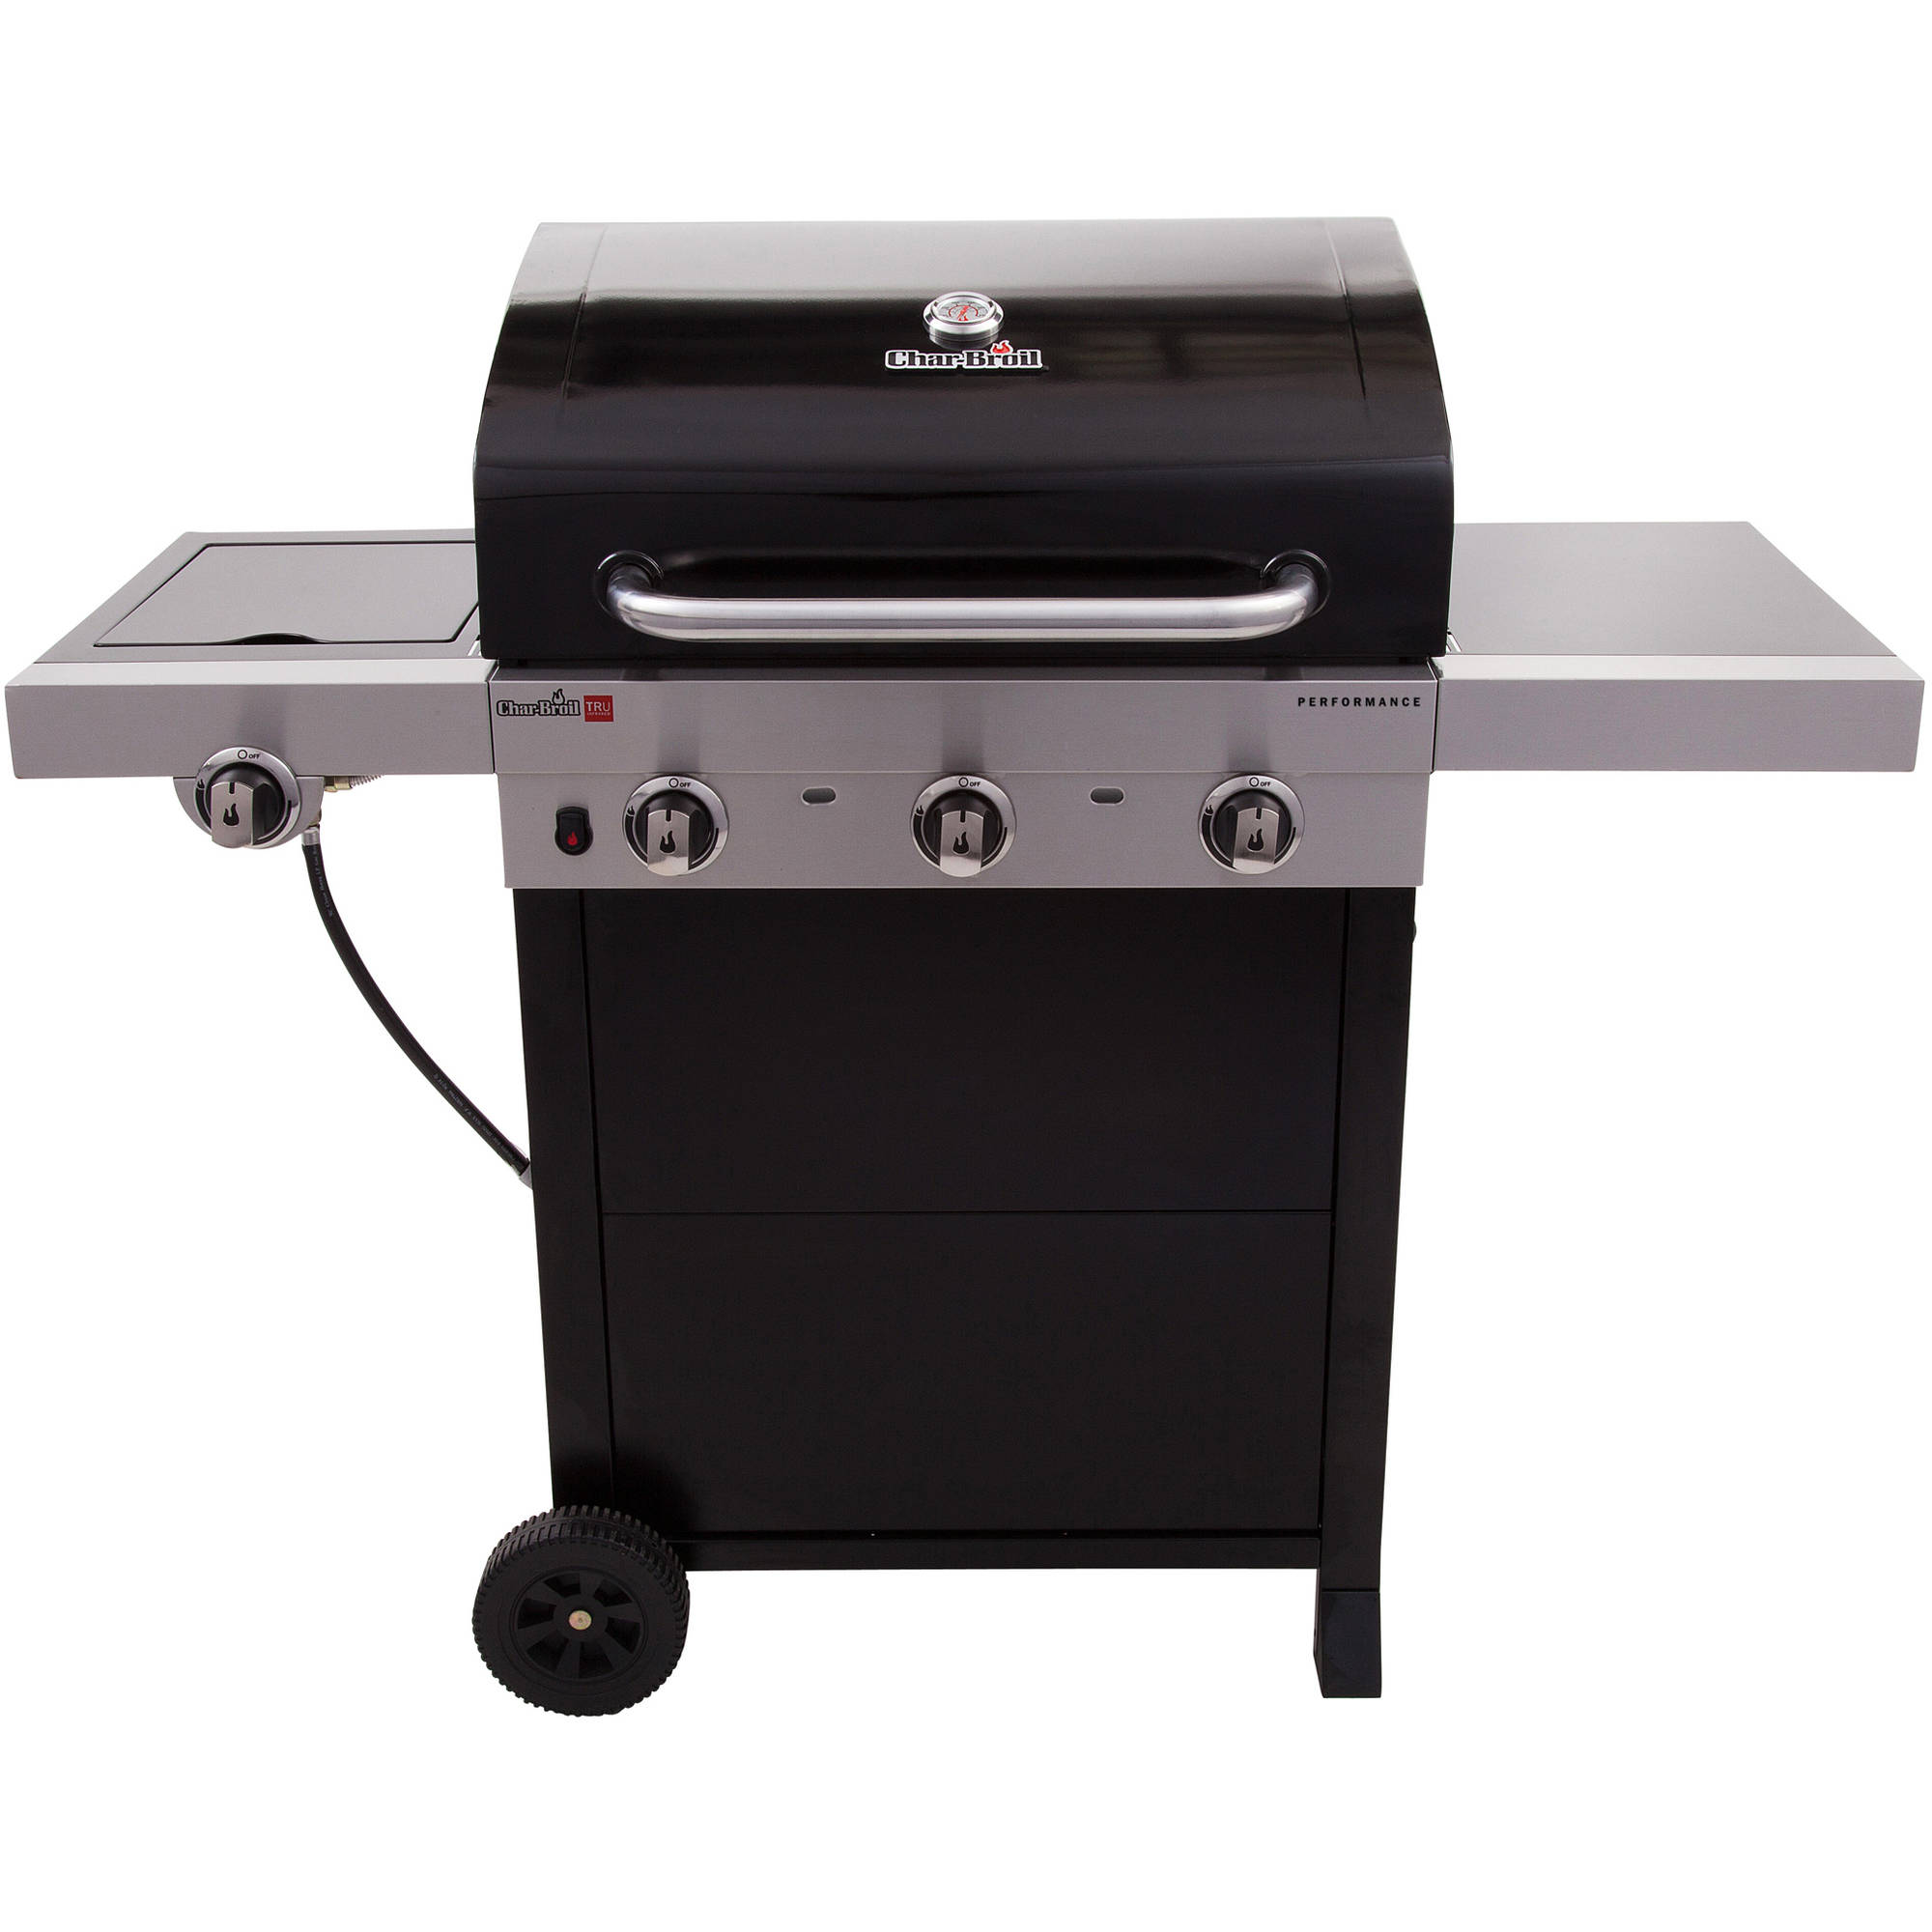 Char broil tru infrared 3 burner grill top quality gas bbq for Gas grill tops outdoor kitchen